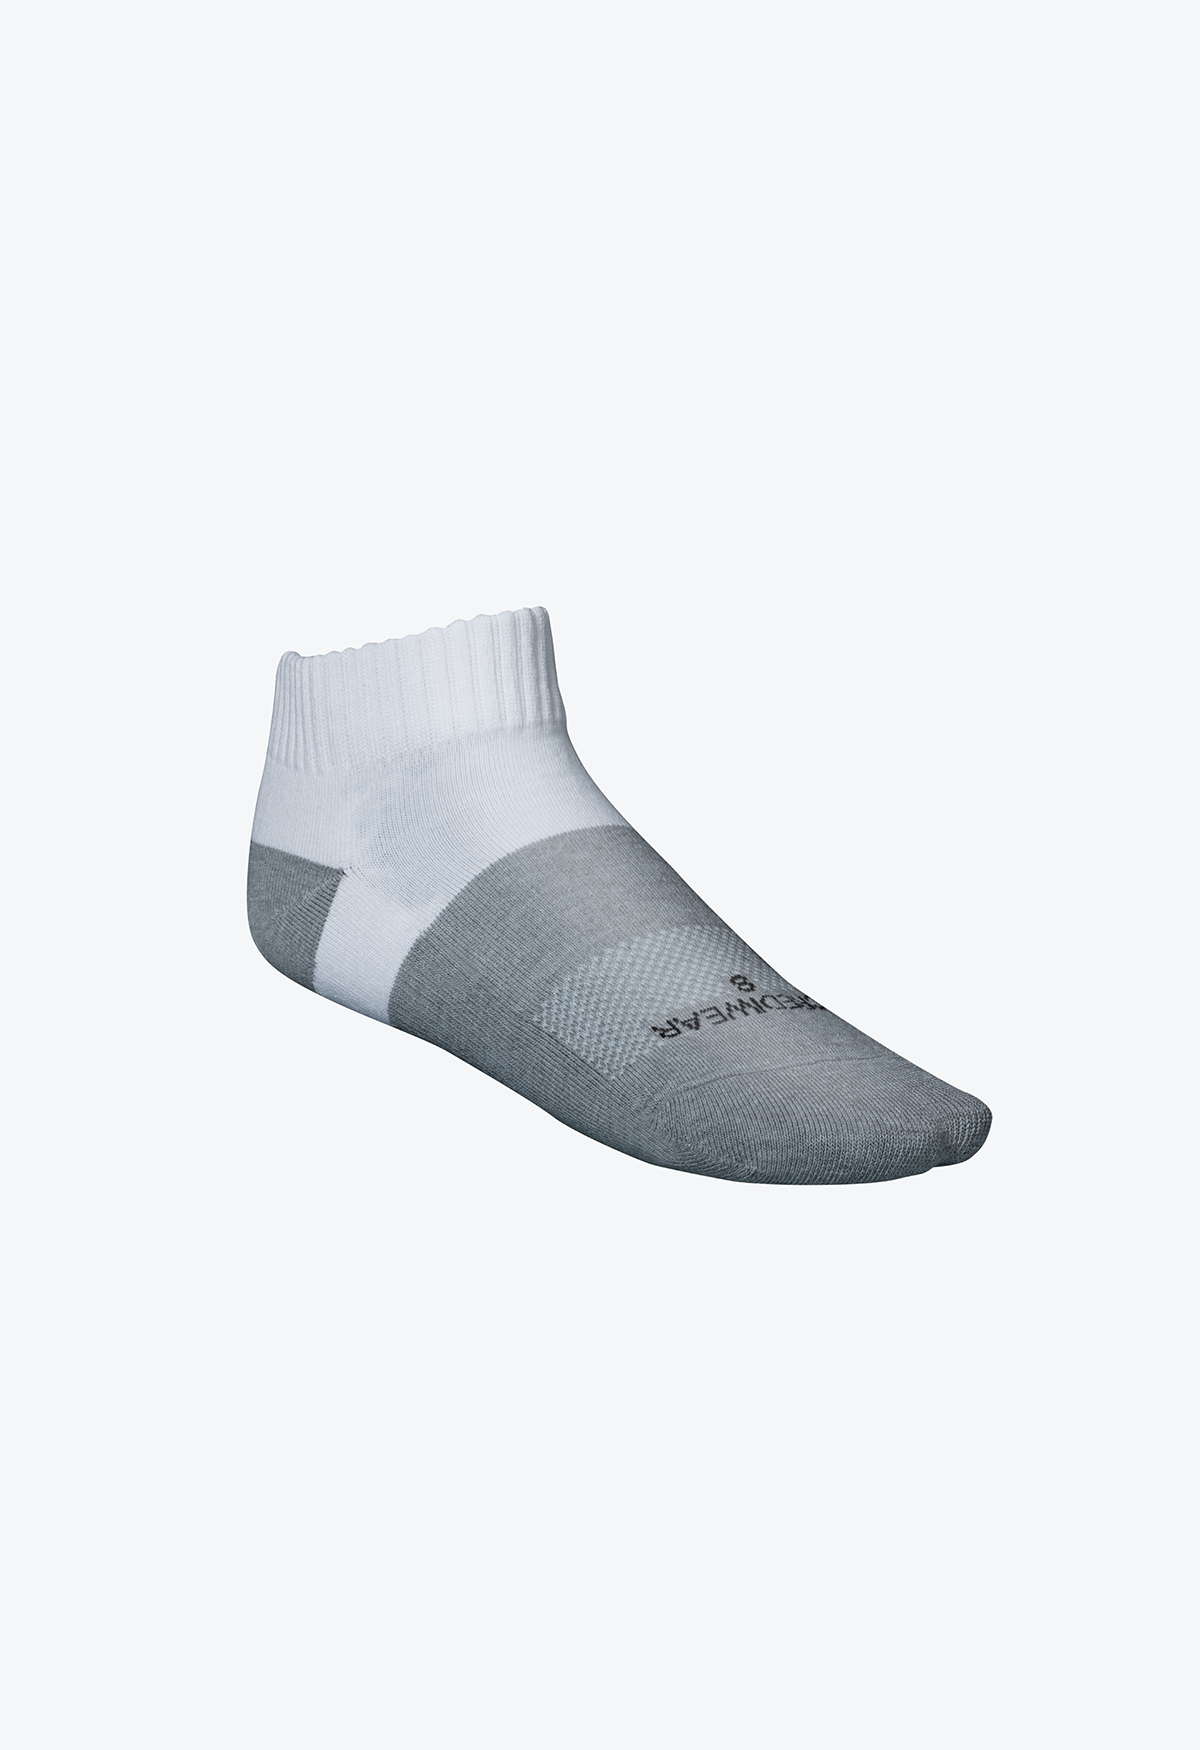 Incrediwear Active Socks - White - Low Cut